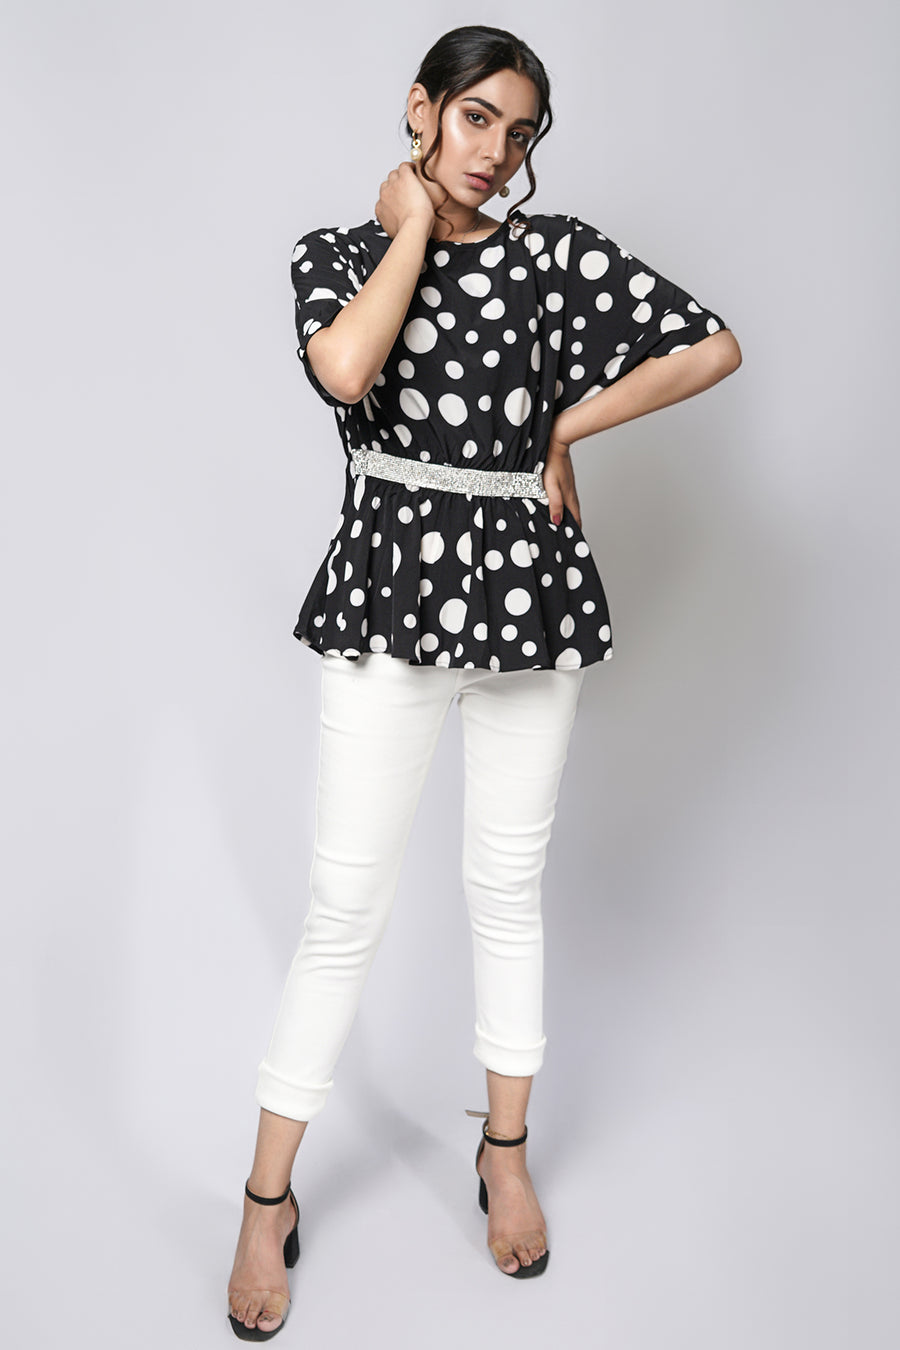 Mantra Pakistan Polka dot tee with diamonte belt | Western Wear